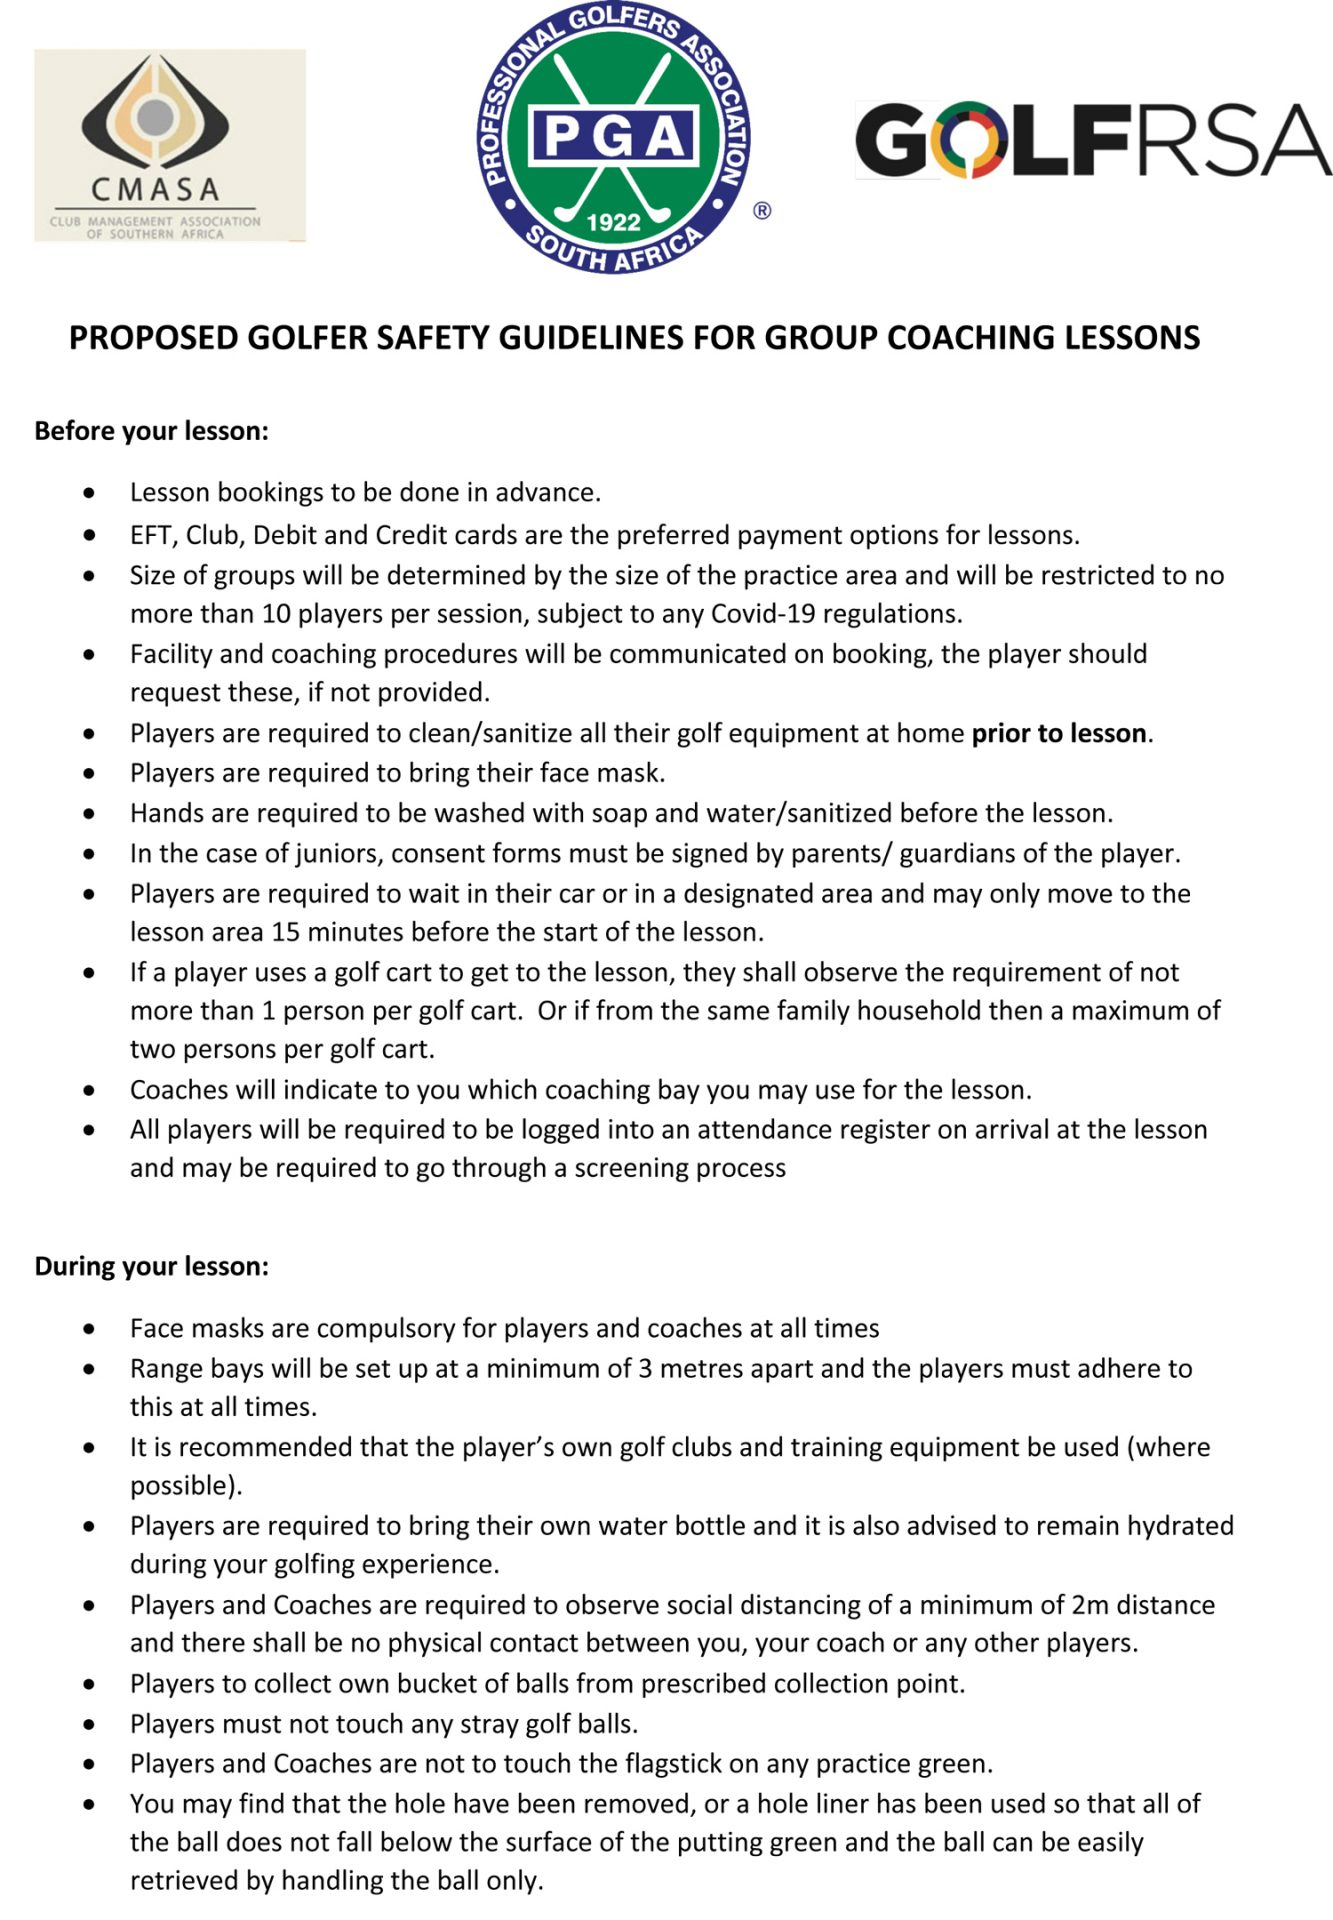 Proposed-Guidelines-for-Group-Coaching-lessons-final4-1